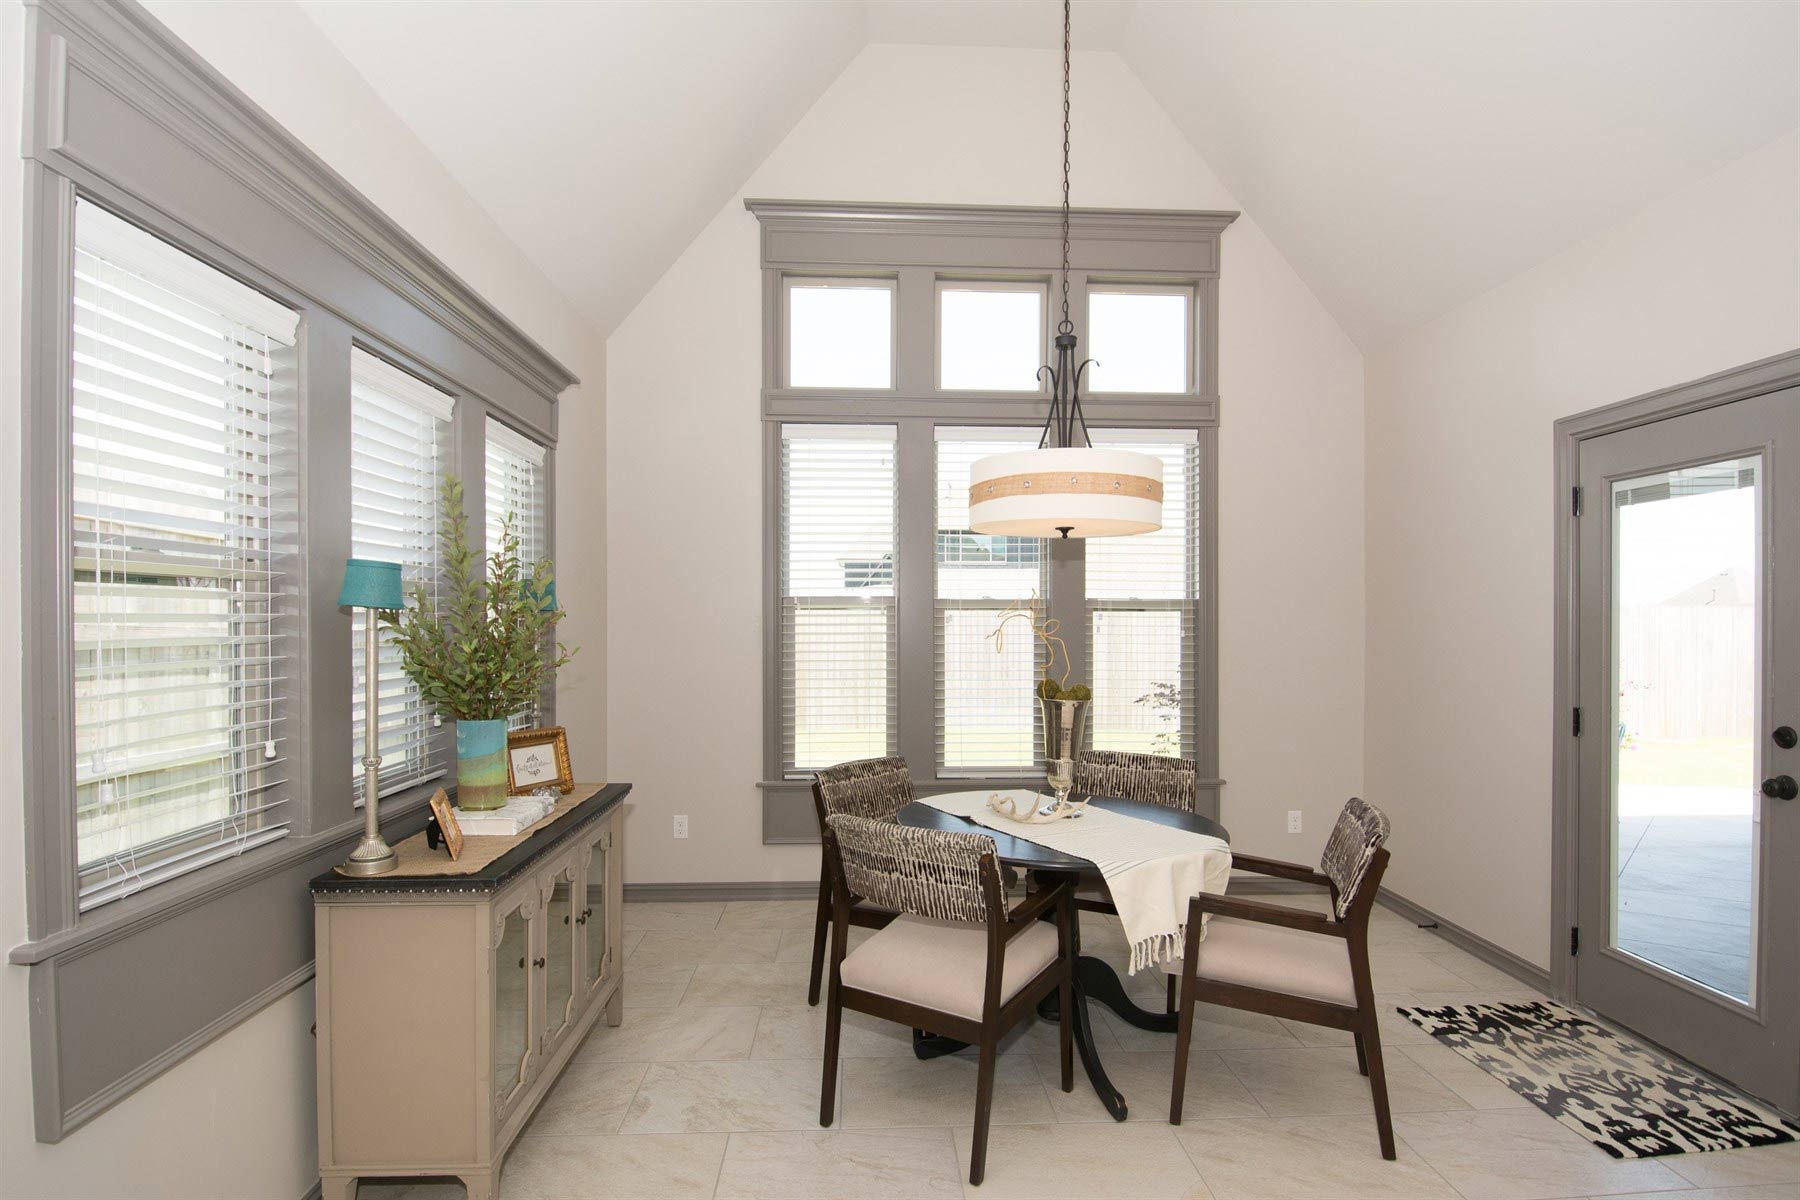 Our Model Home Southern Homes Award Winning Tulsa